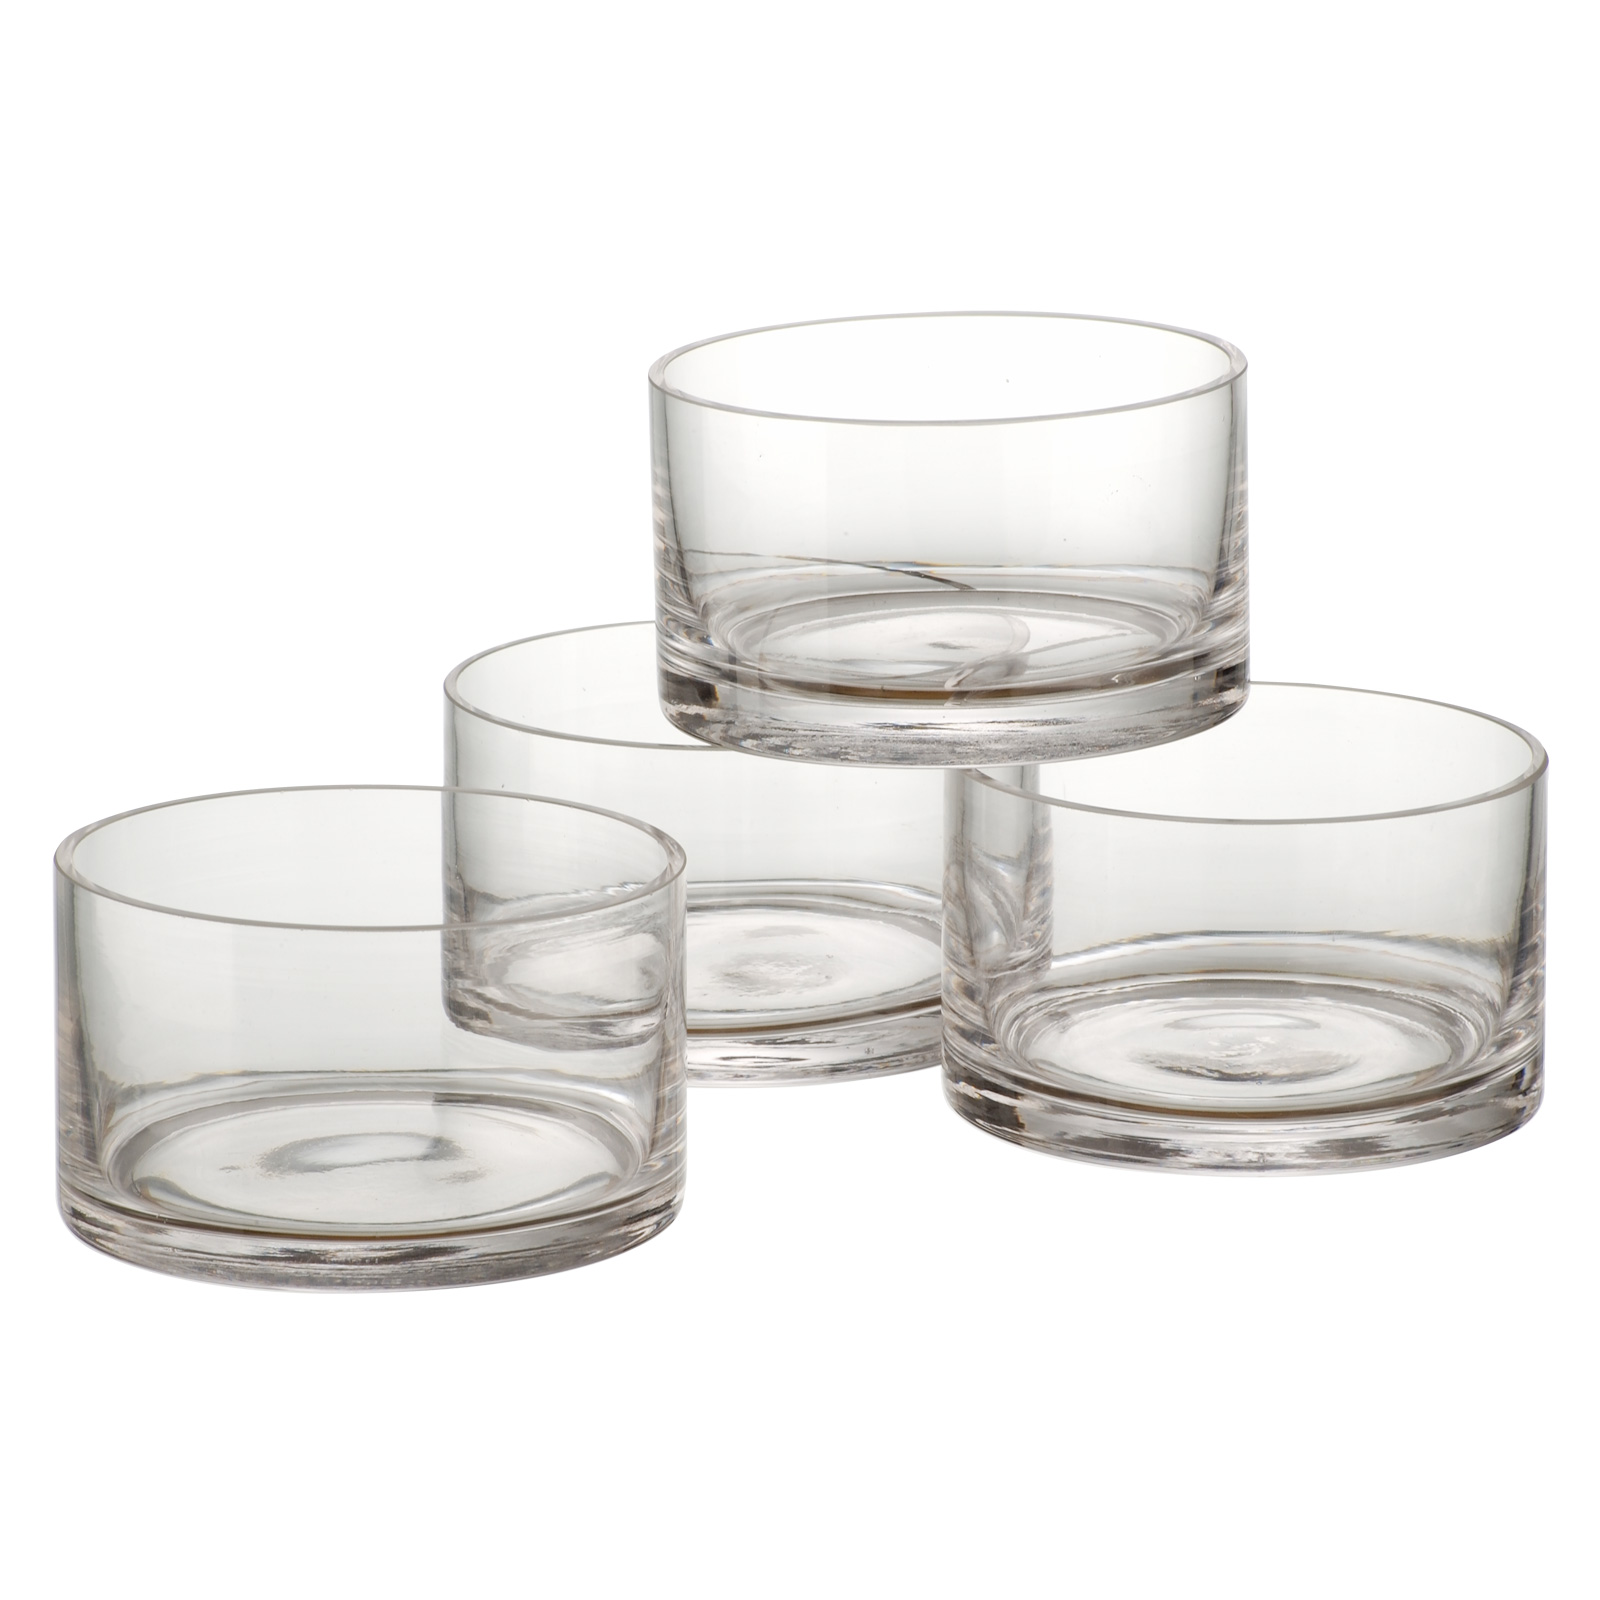 Set of 4 Simplicity Individual Salad Bowls  by Artland